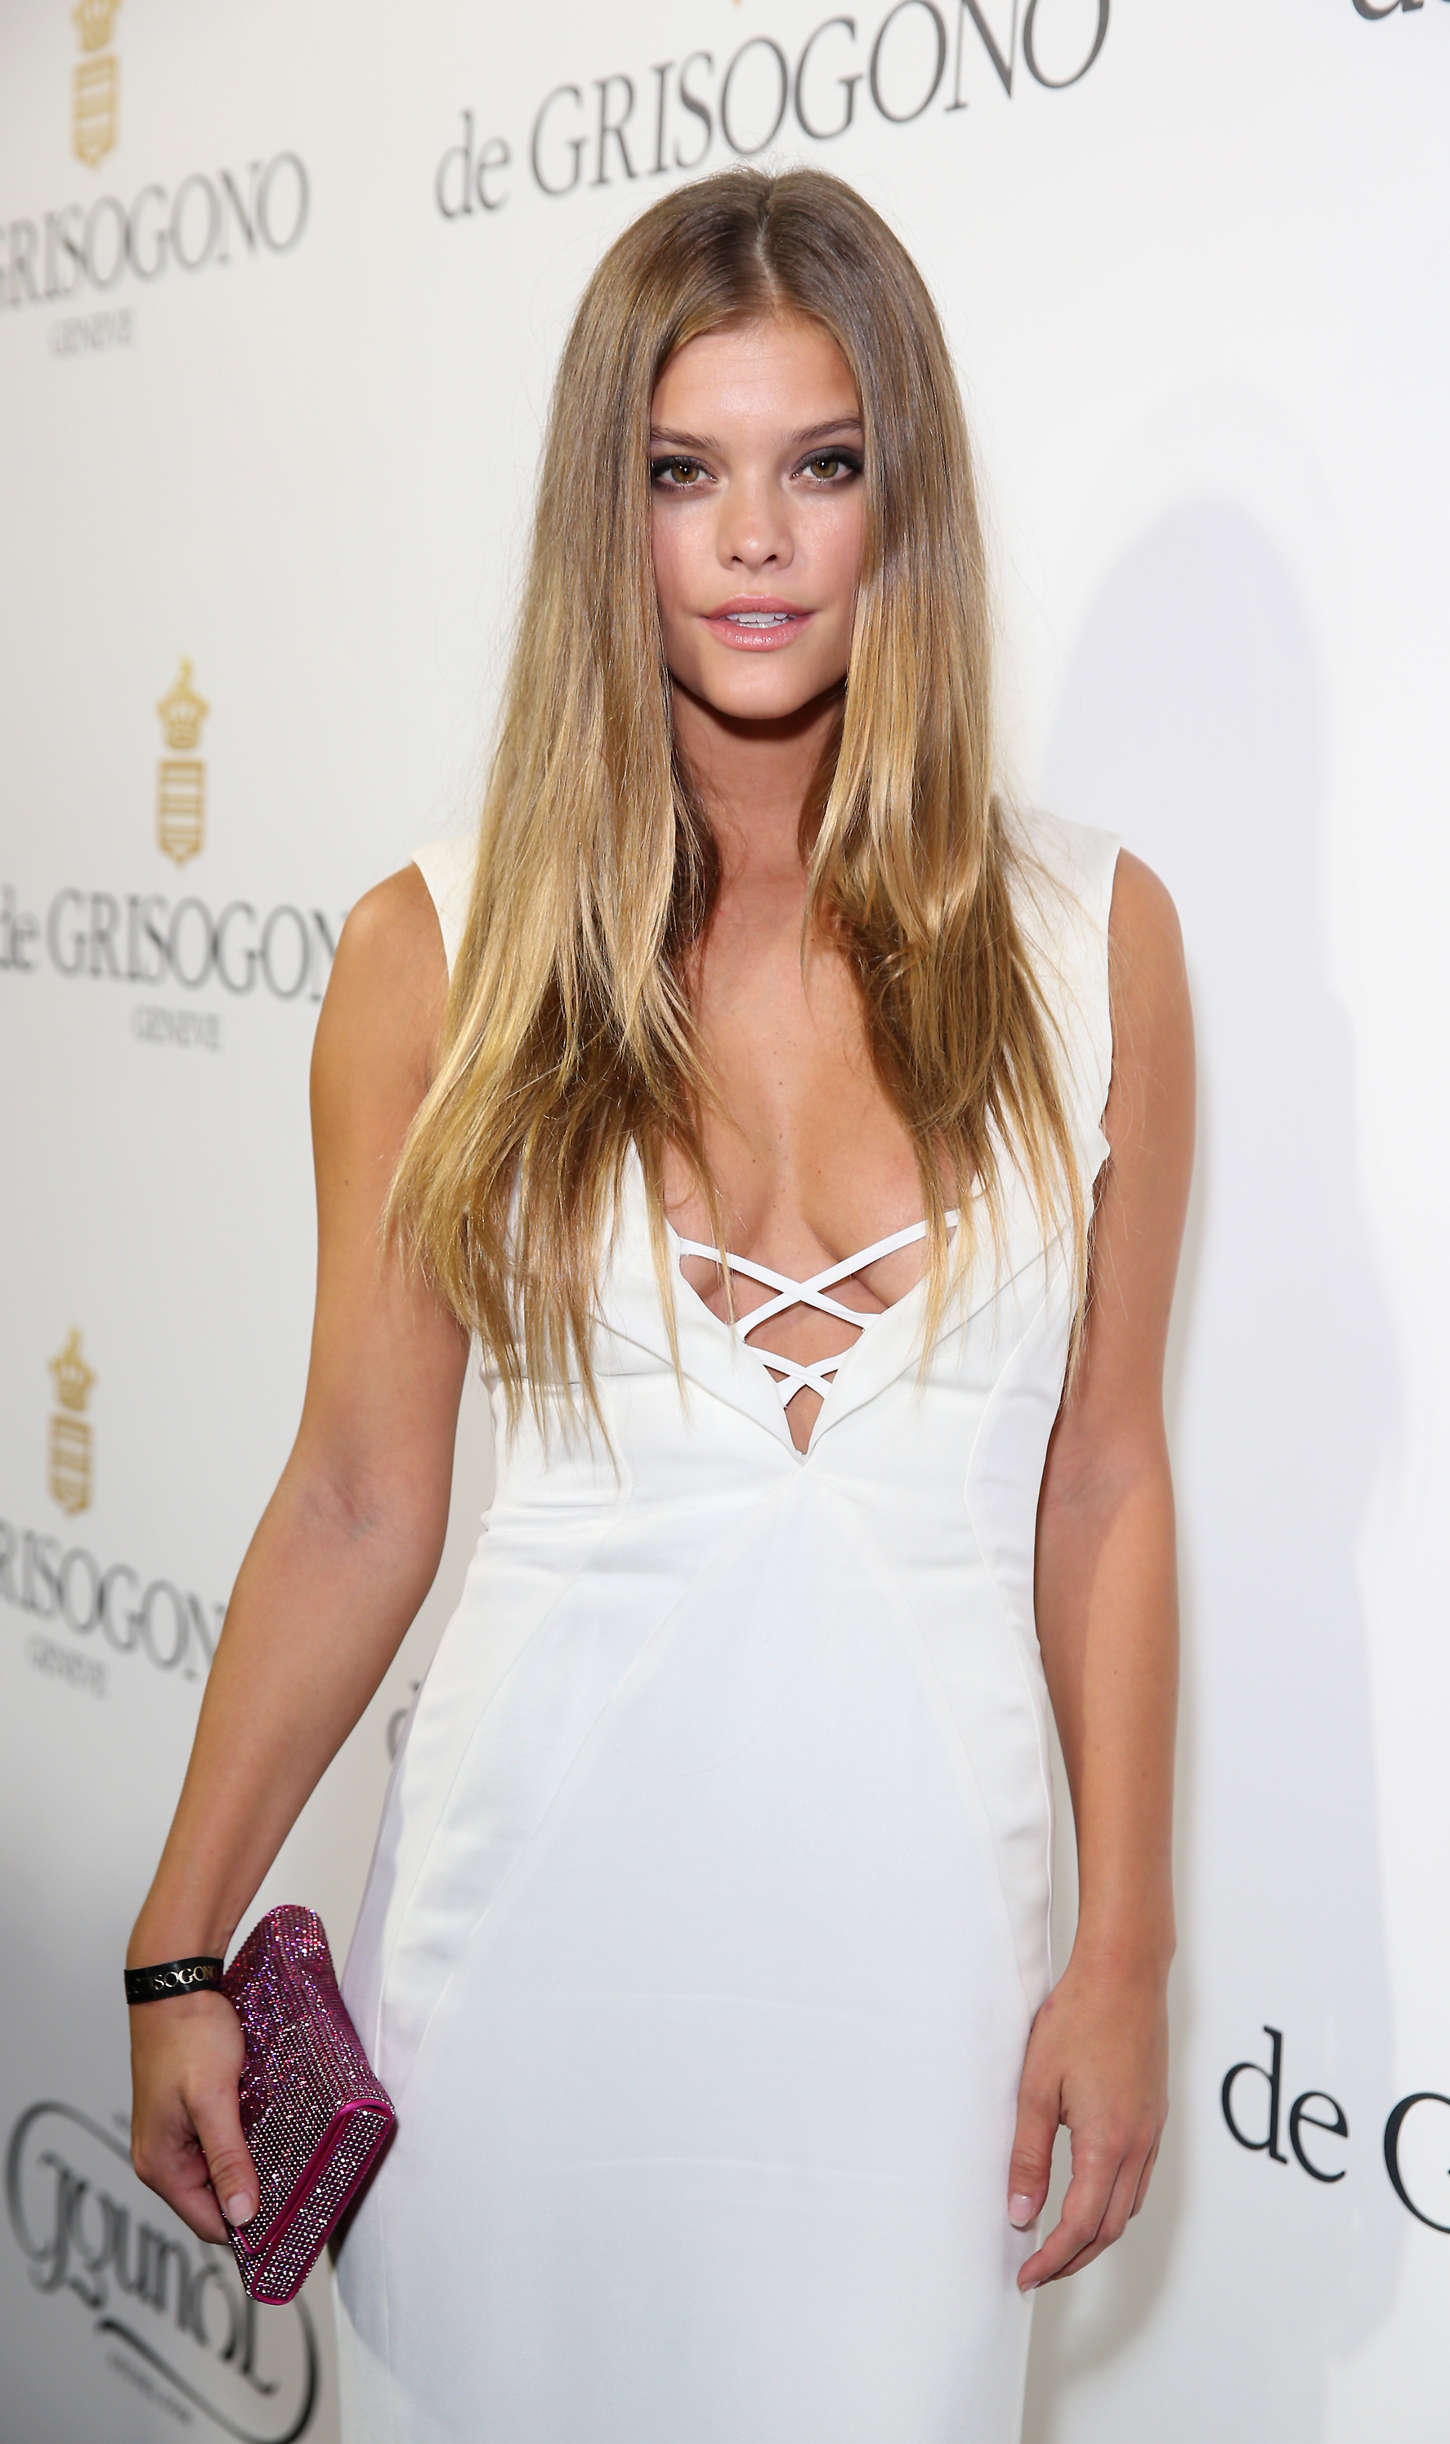 Nina Agdal - De Grisogono Party in Cannes